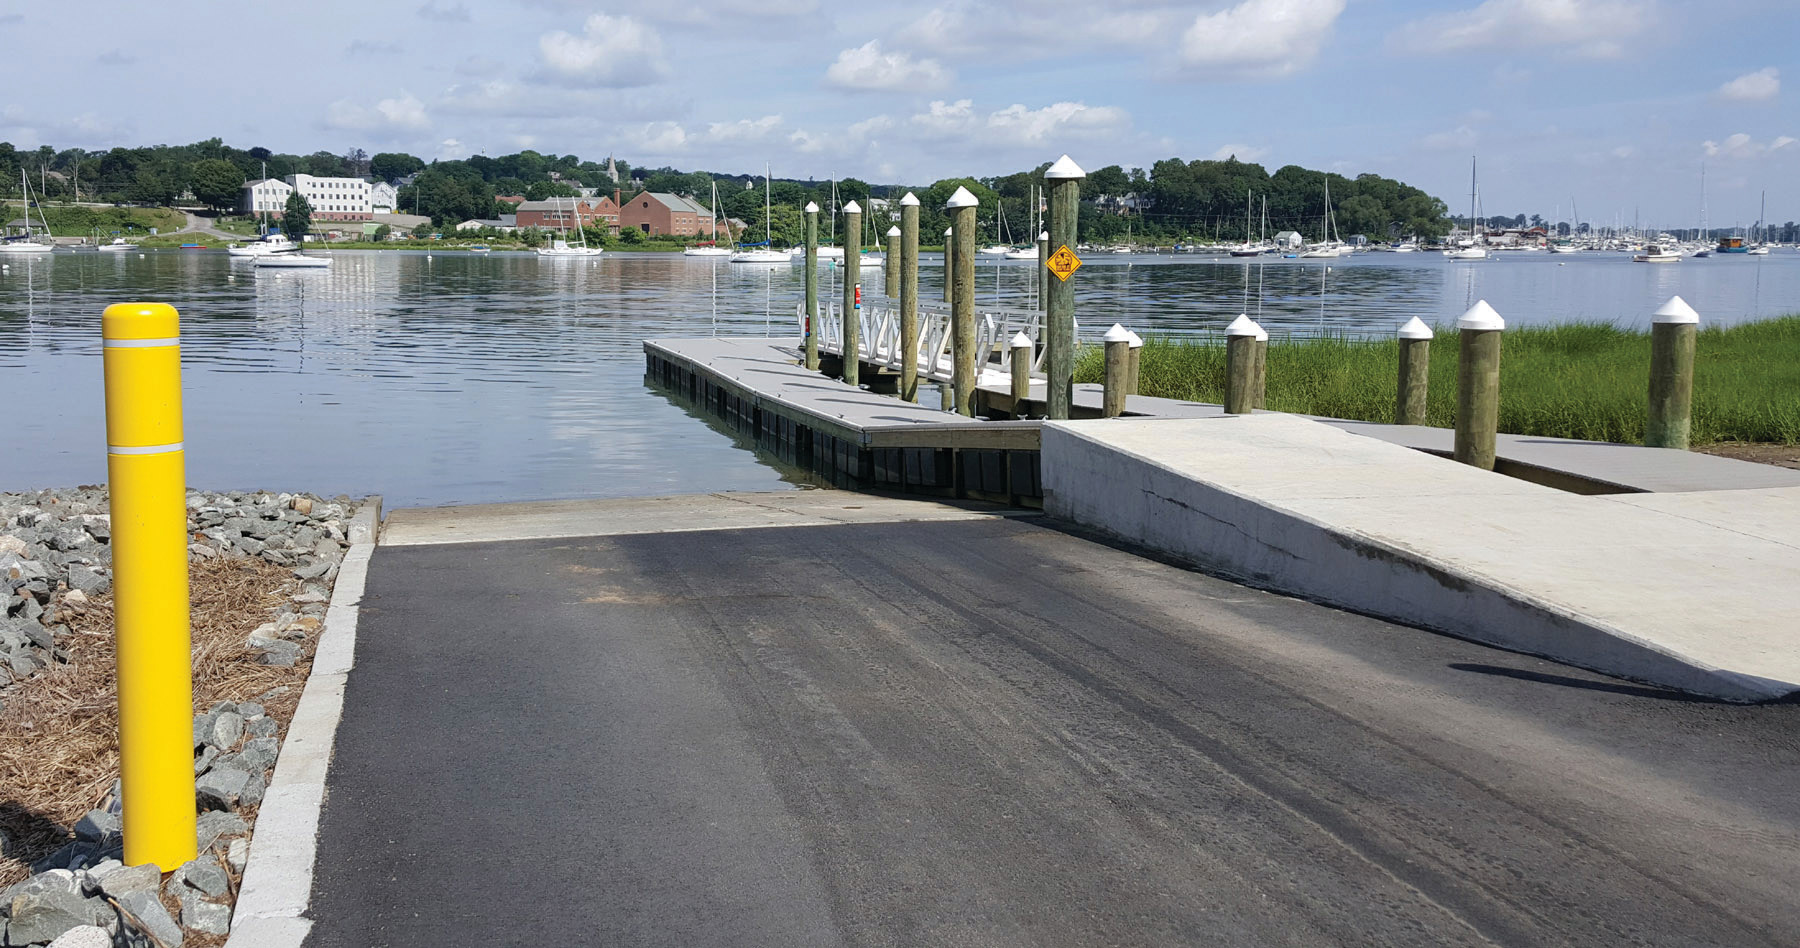 GODDARD BOAT RAMP: The new Goddard Park boat ramp is fully-accessible and features a new deeper water launch site. (Submitted photo)